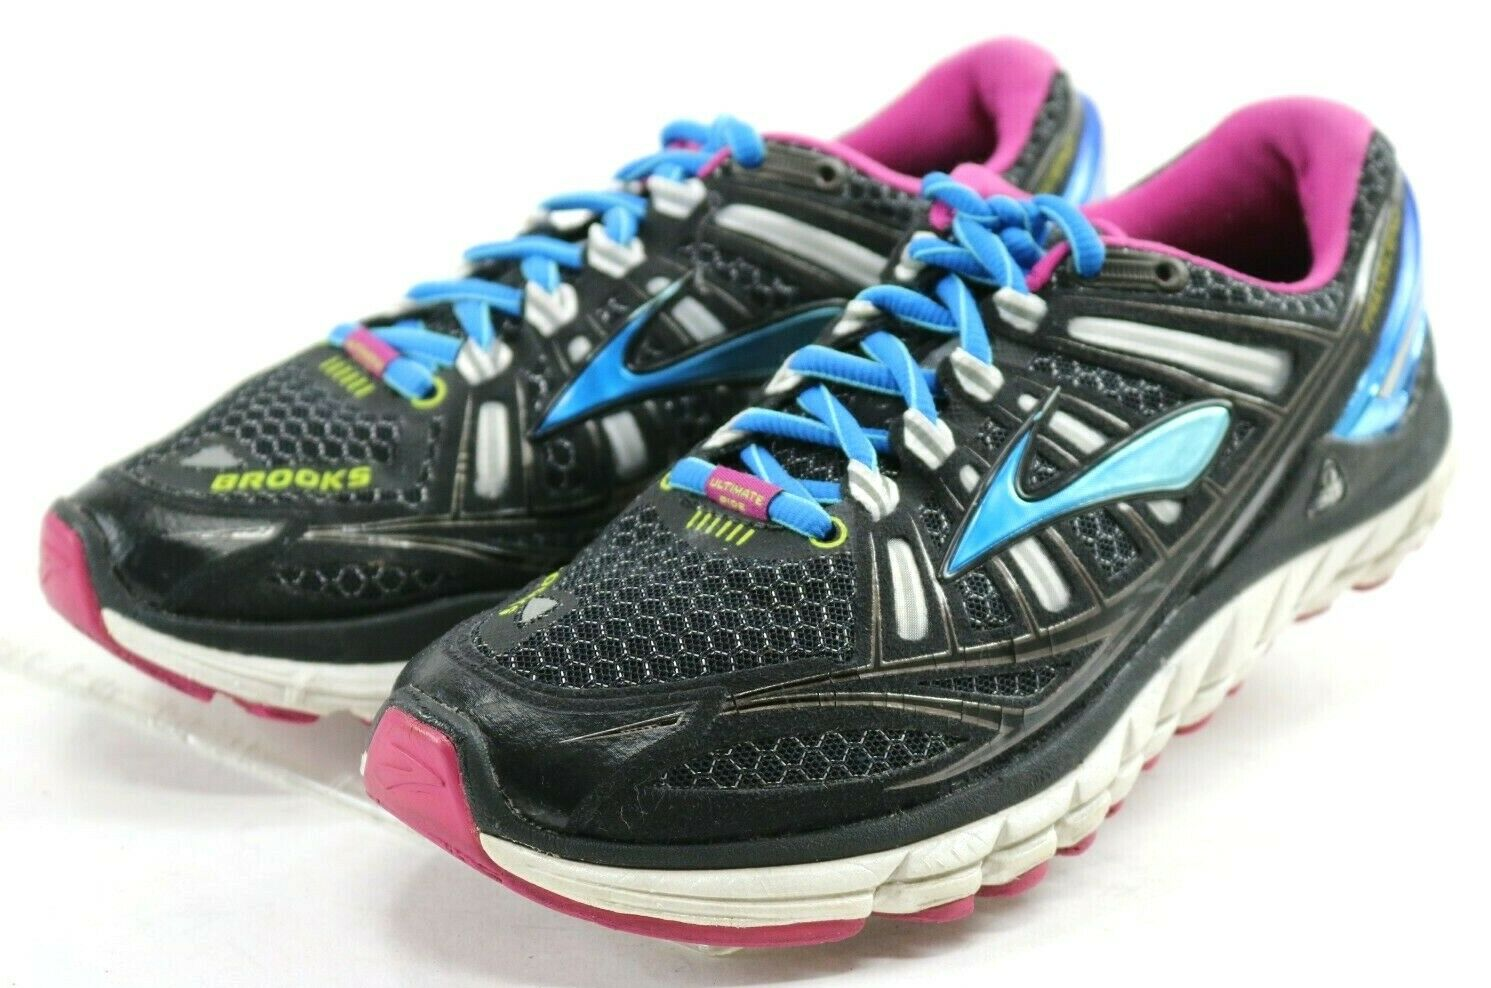 Brooks Transcend 1  110 Women's Running shoes Size 7 Black bluee Pink